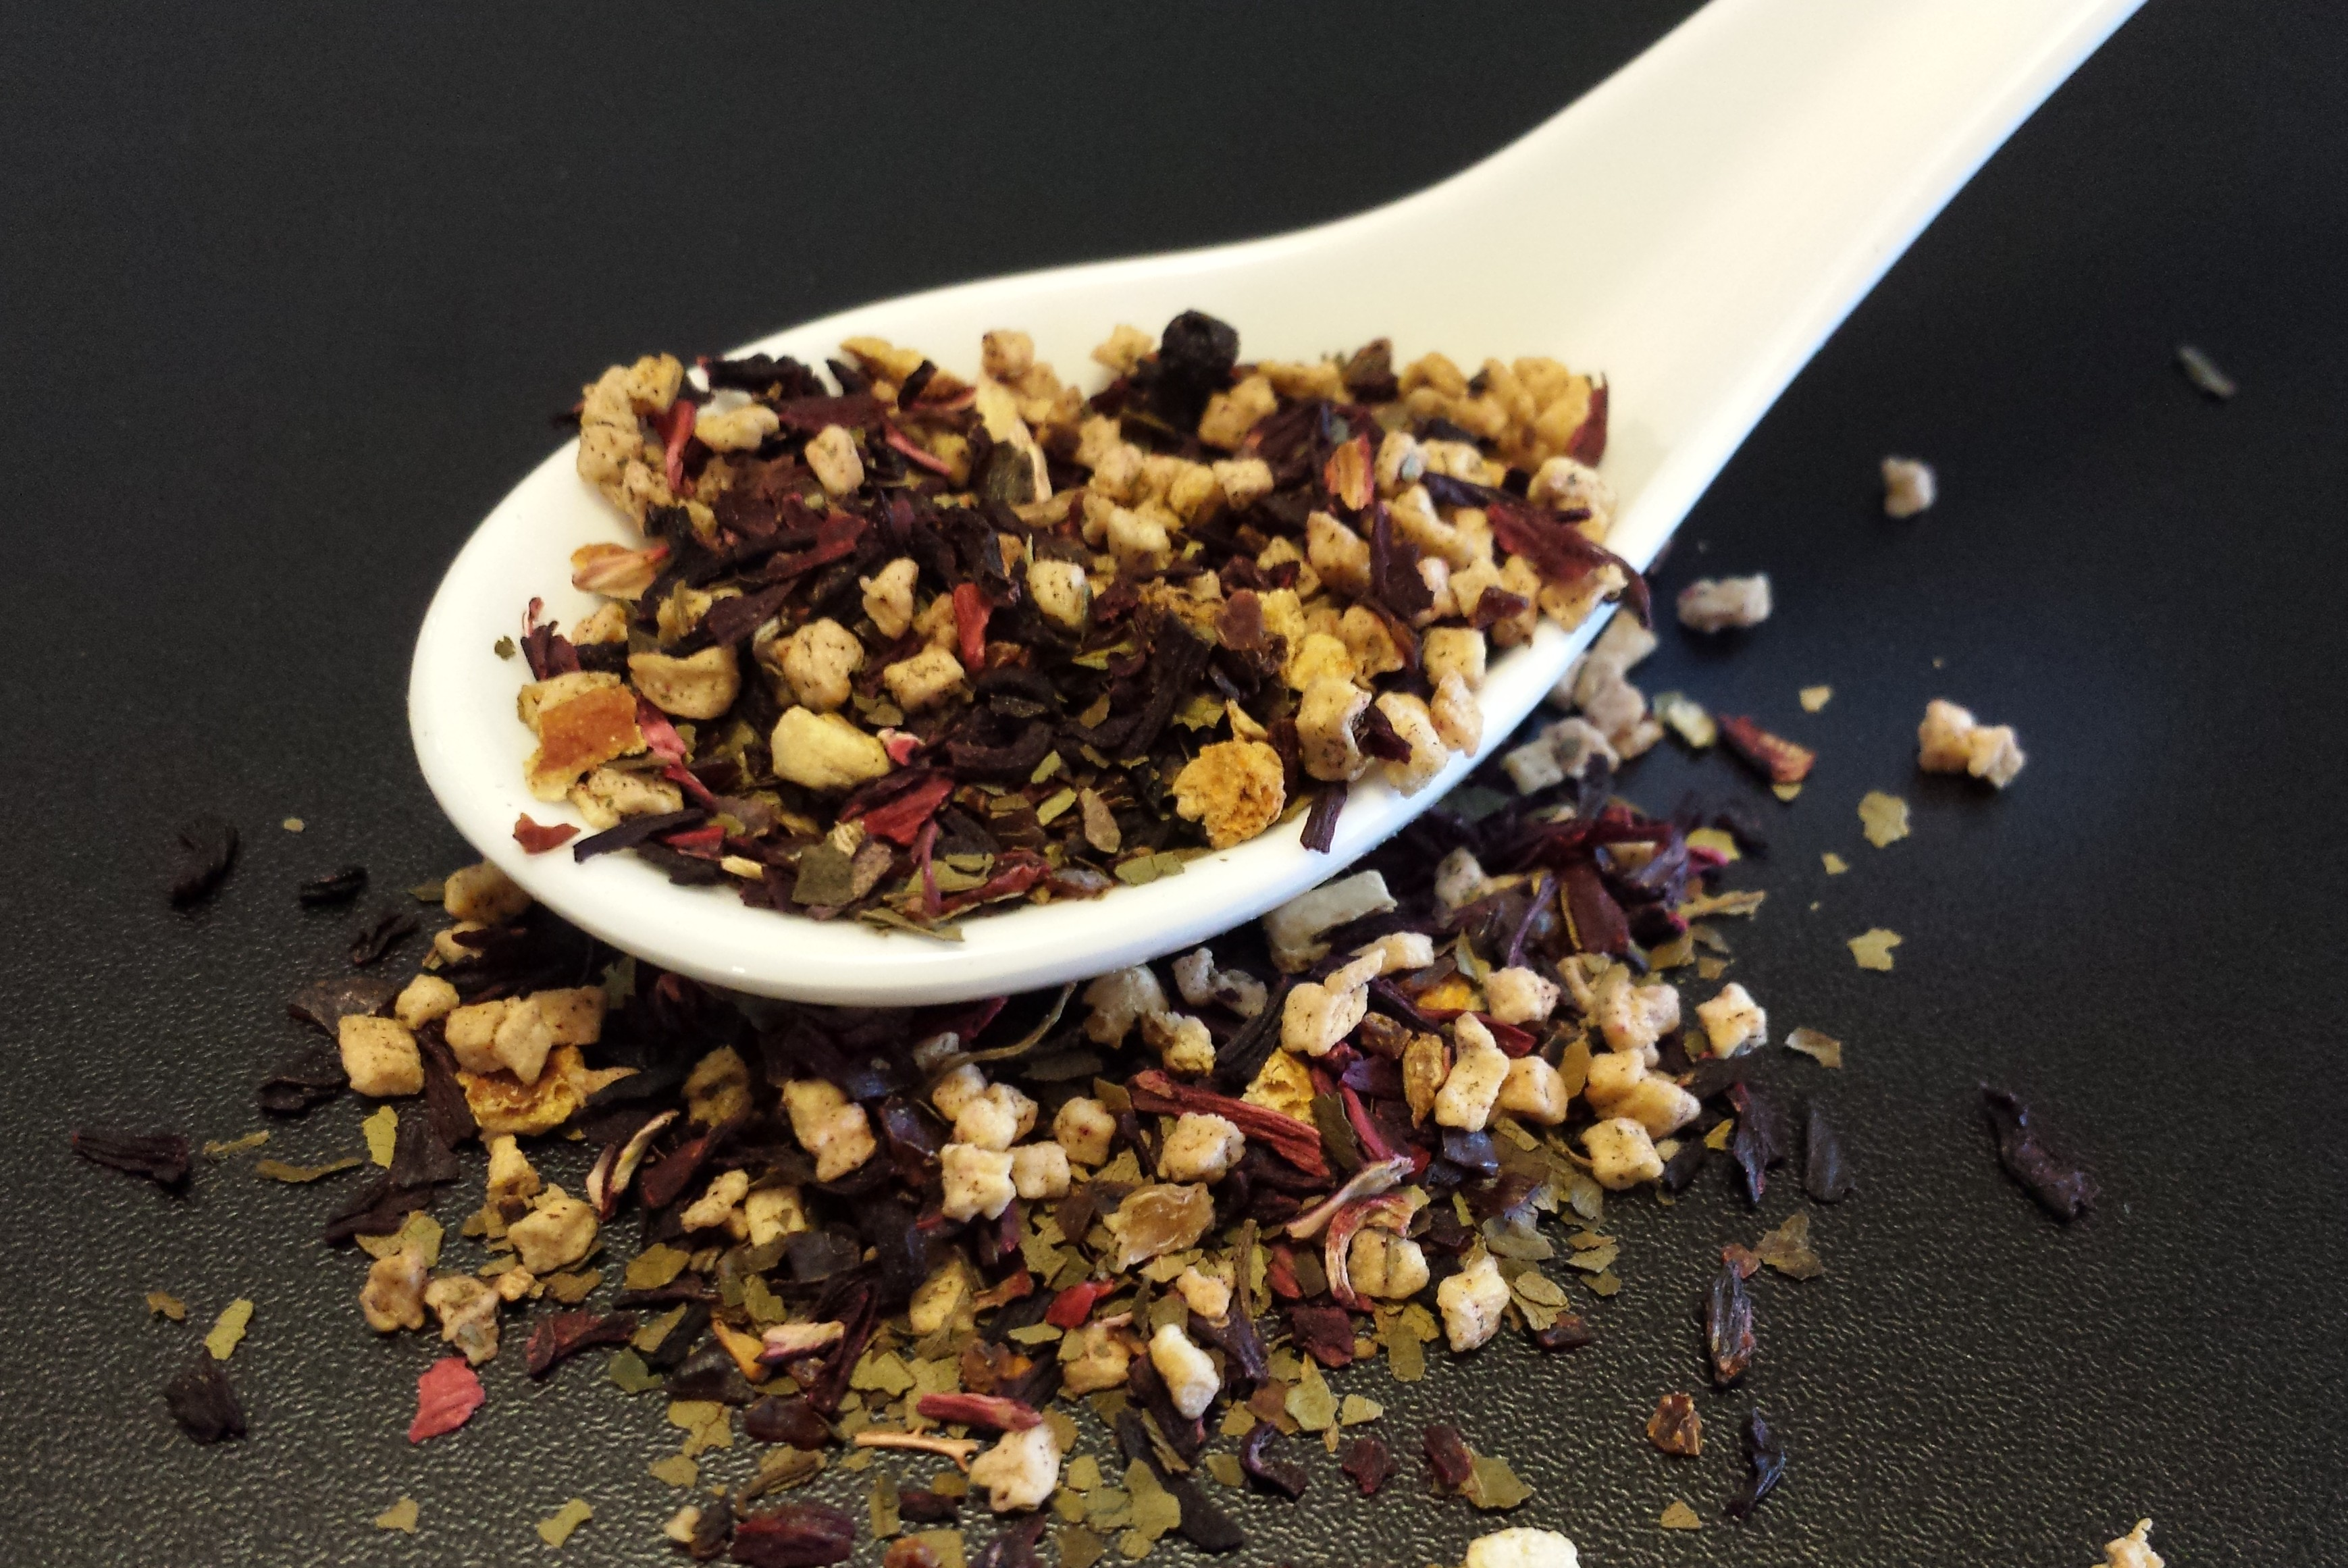 Berry Blueberry, tisane, berry leaves, rose hips, hibiscus, caffeine free